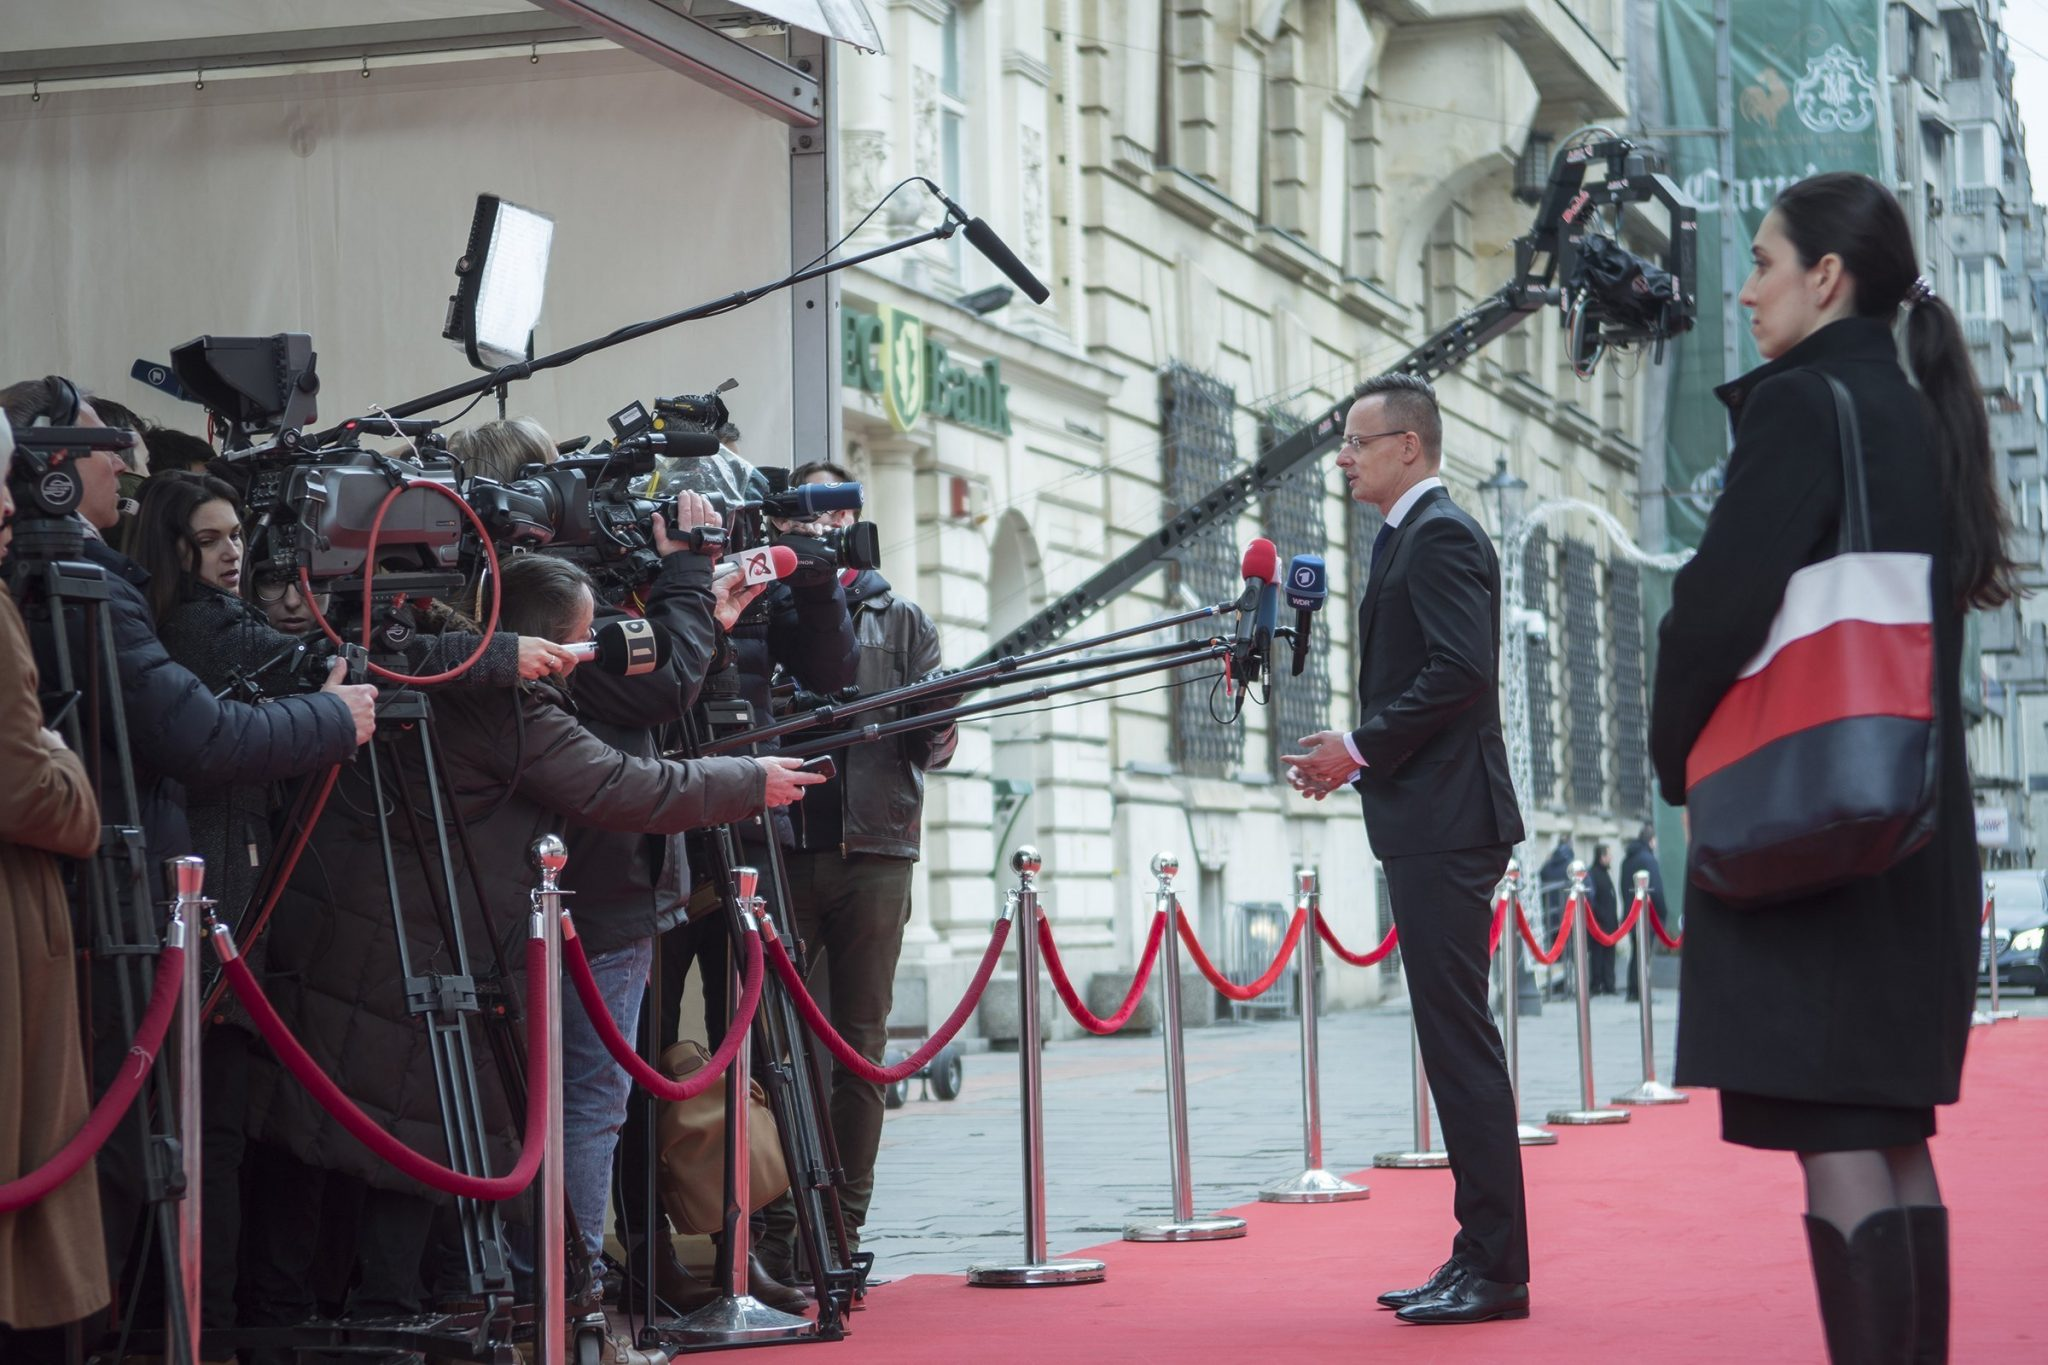 hungarian foreign minister press